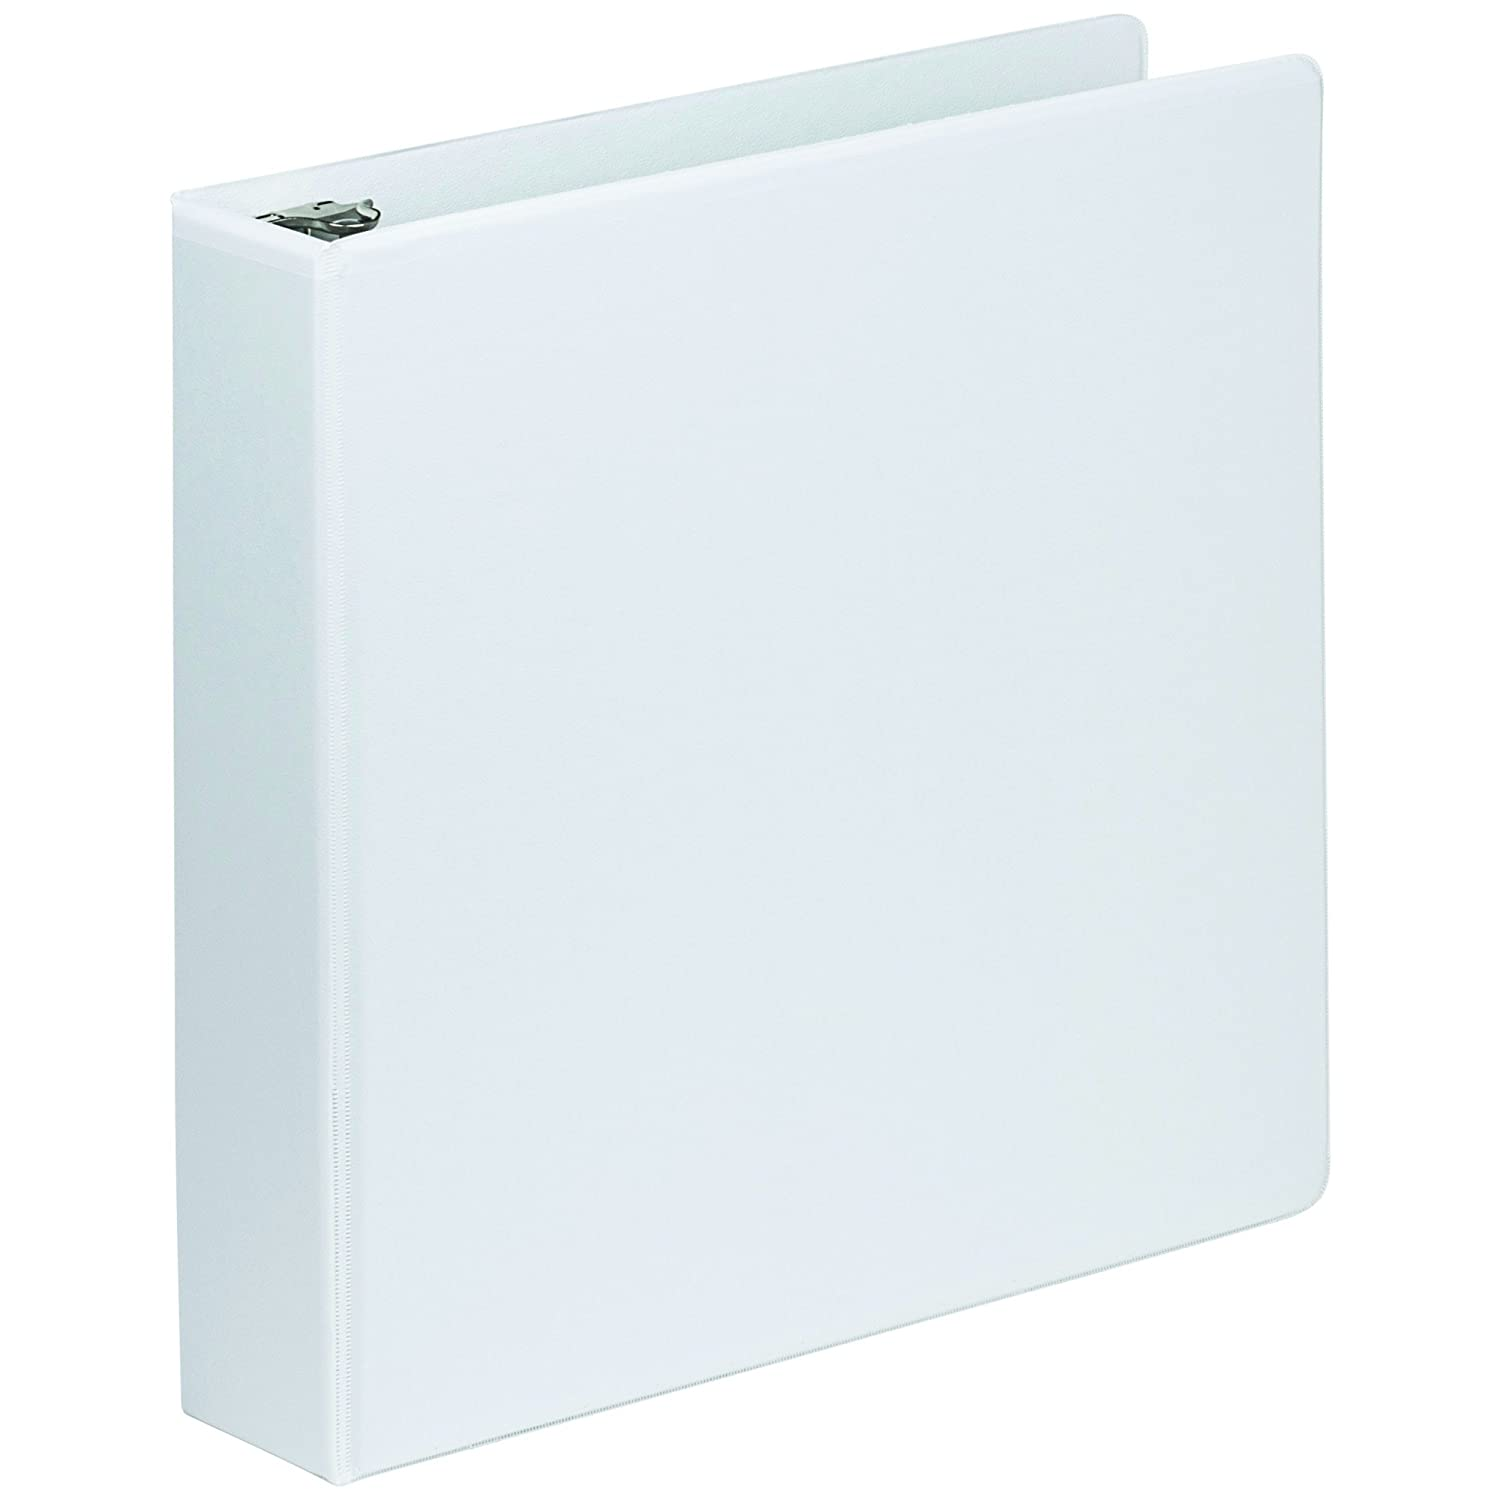 4 Pack White I08567 Samsill 2-Inch Value View Binder